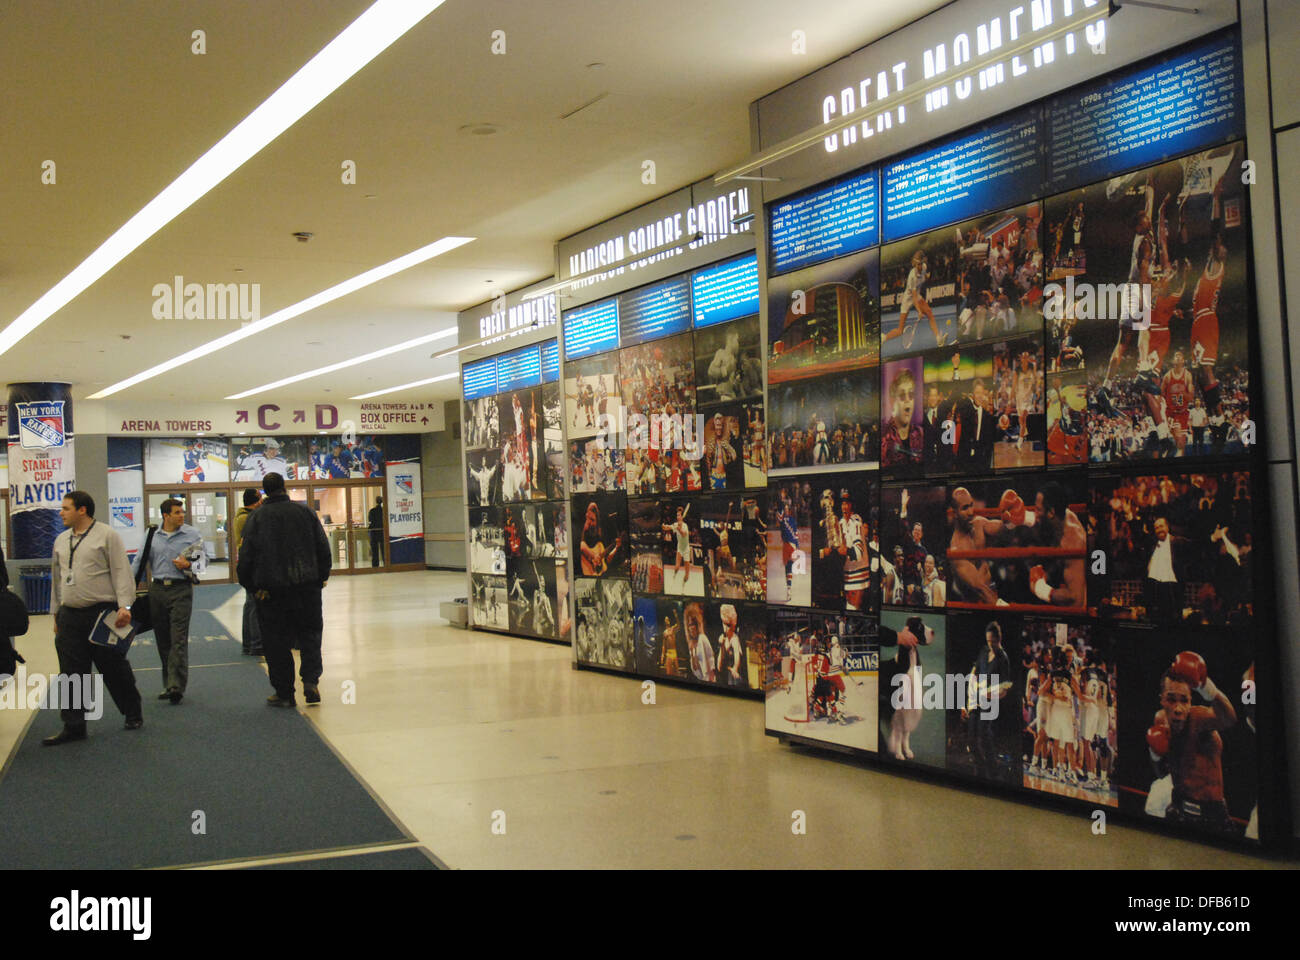 Lobby of Madison Square Garden Stock Photo: 61097161 - Alamy